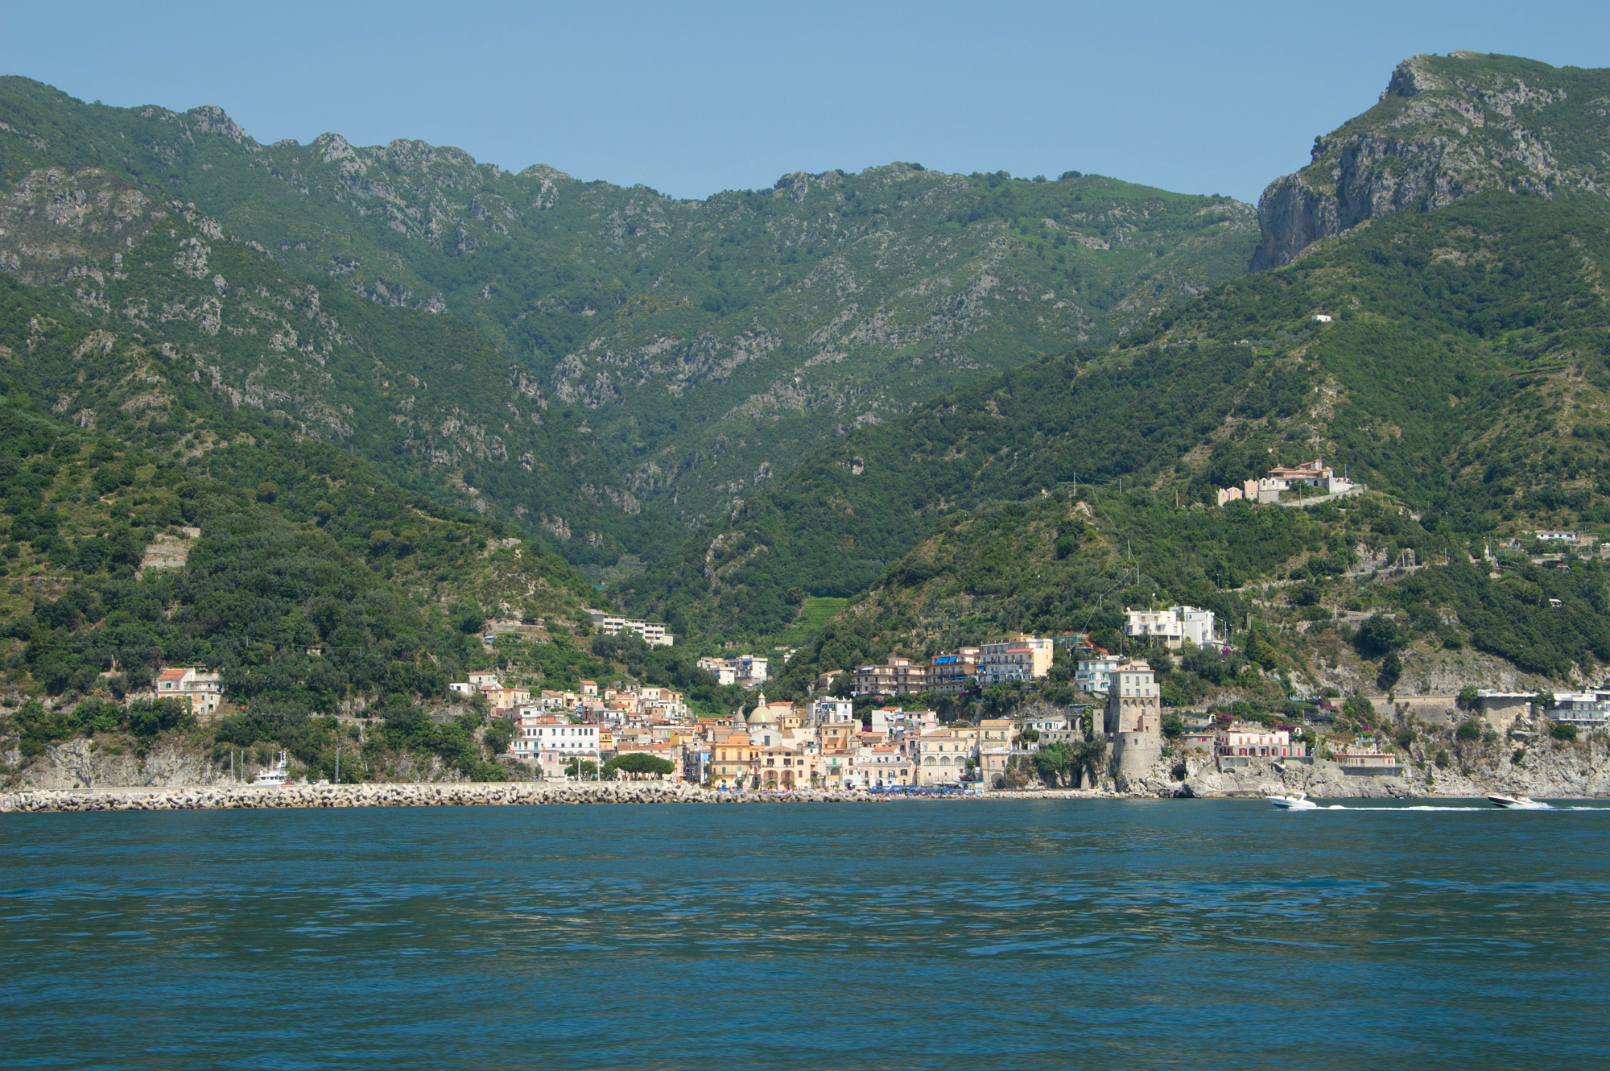 ciao-amalfi-ferry-service-to-minori-maiori-cetara-beach-minori-cetara-from-ferry